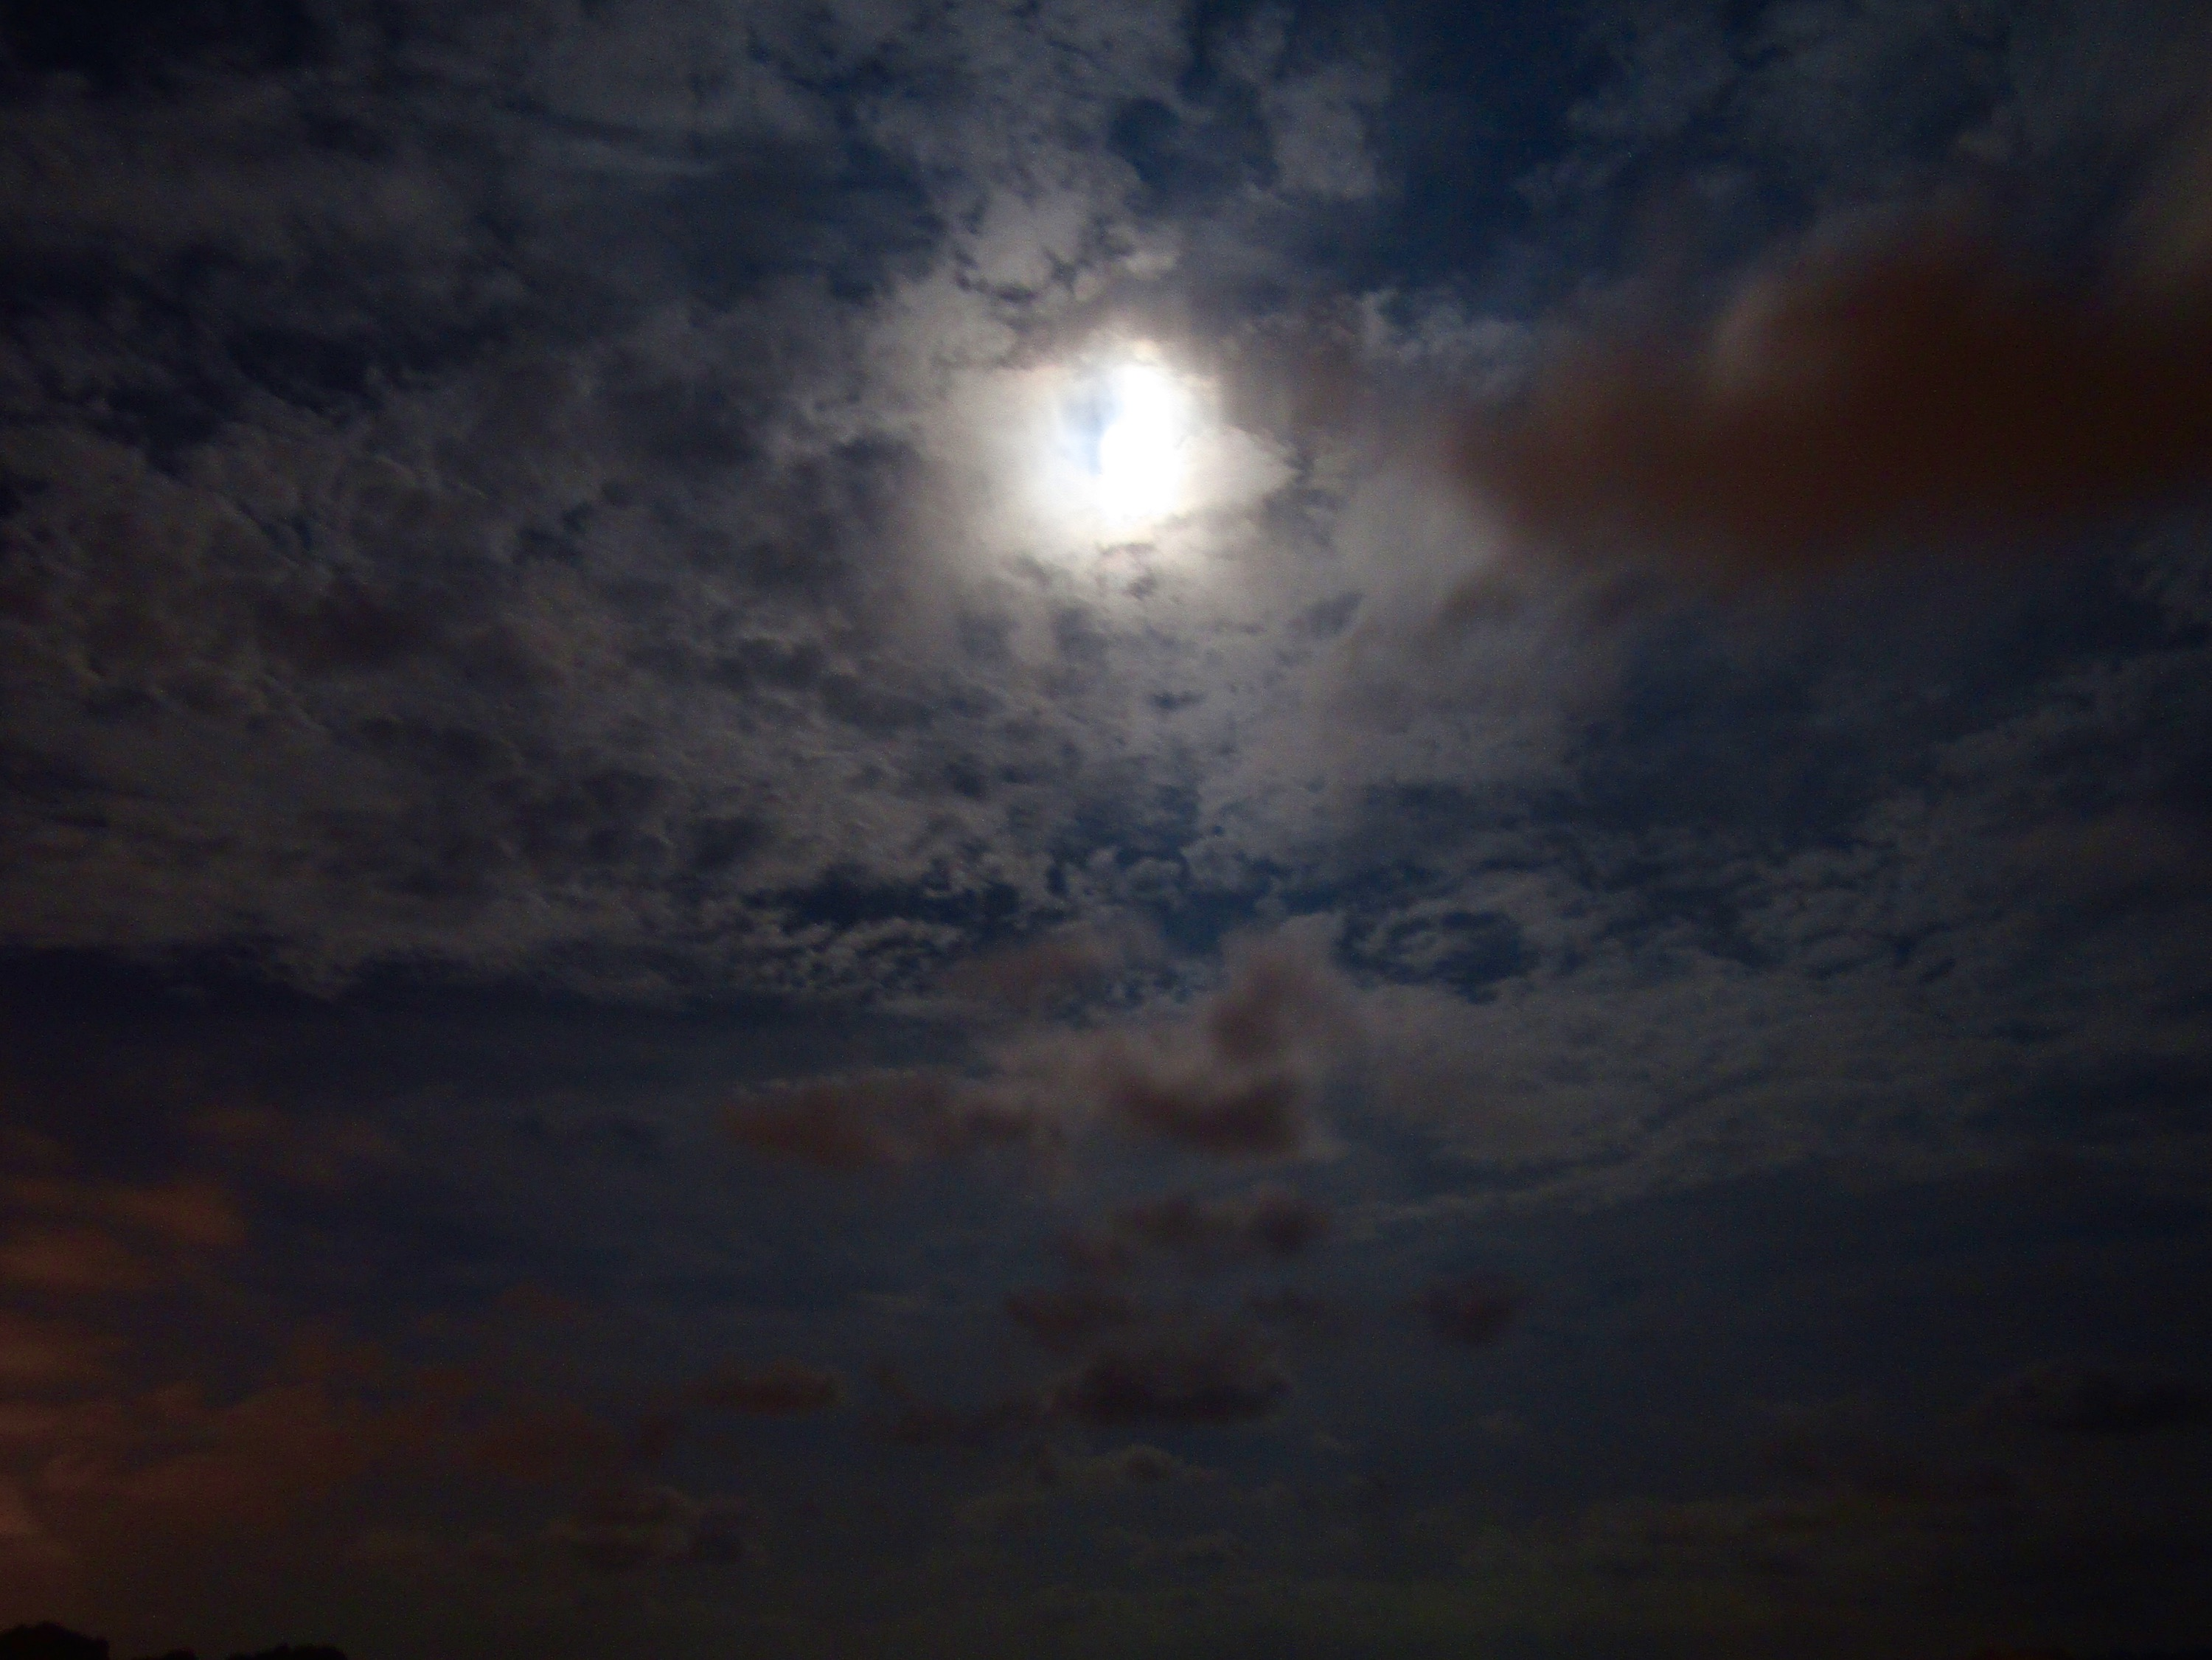 Fiddling with the nighttime settings on our new camera, I managed to capture the moon over the gulf on a cloudy evening.